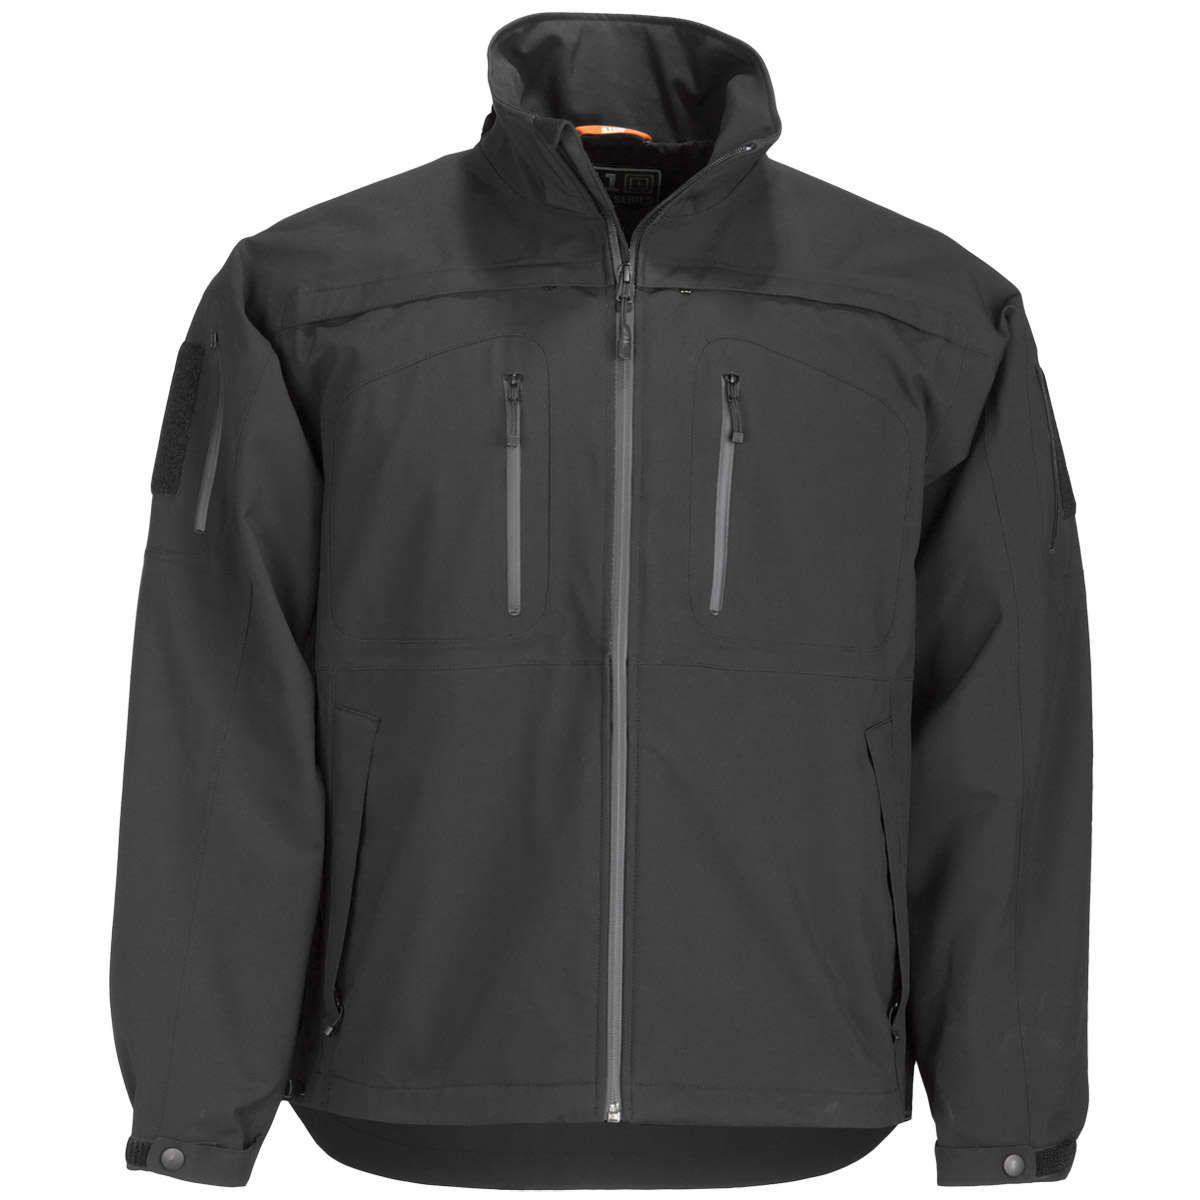 5.11 TACTICAL SABRE 2.0 MENS SOFT SHELL JACKET WIND ...